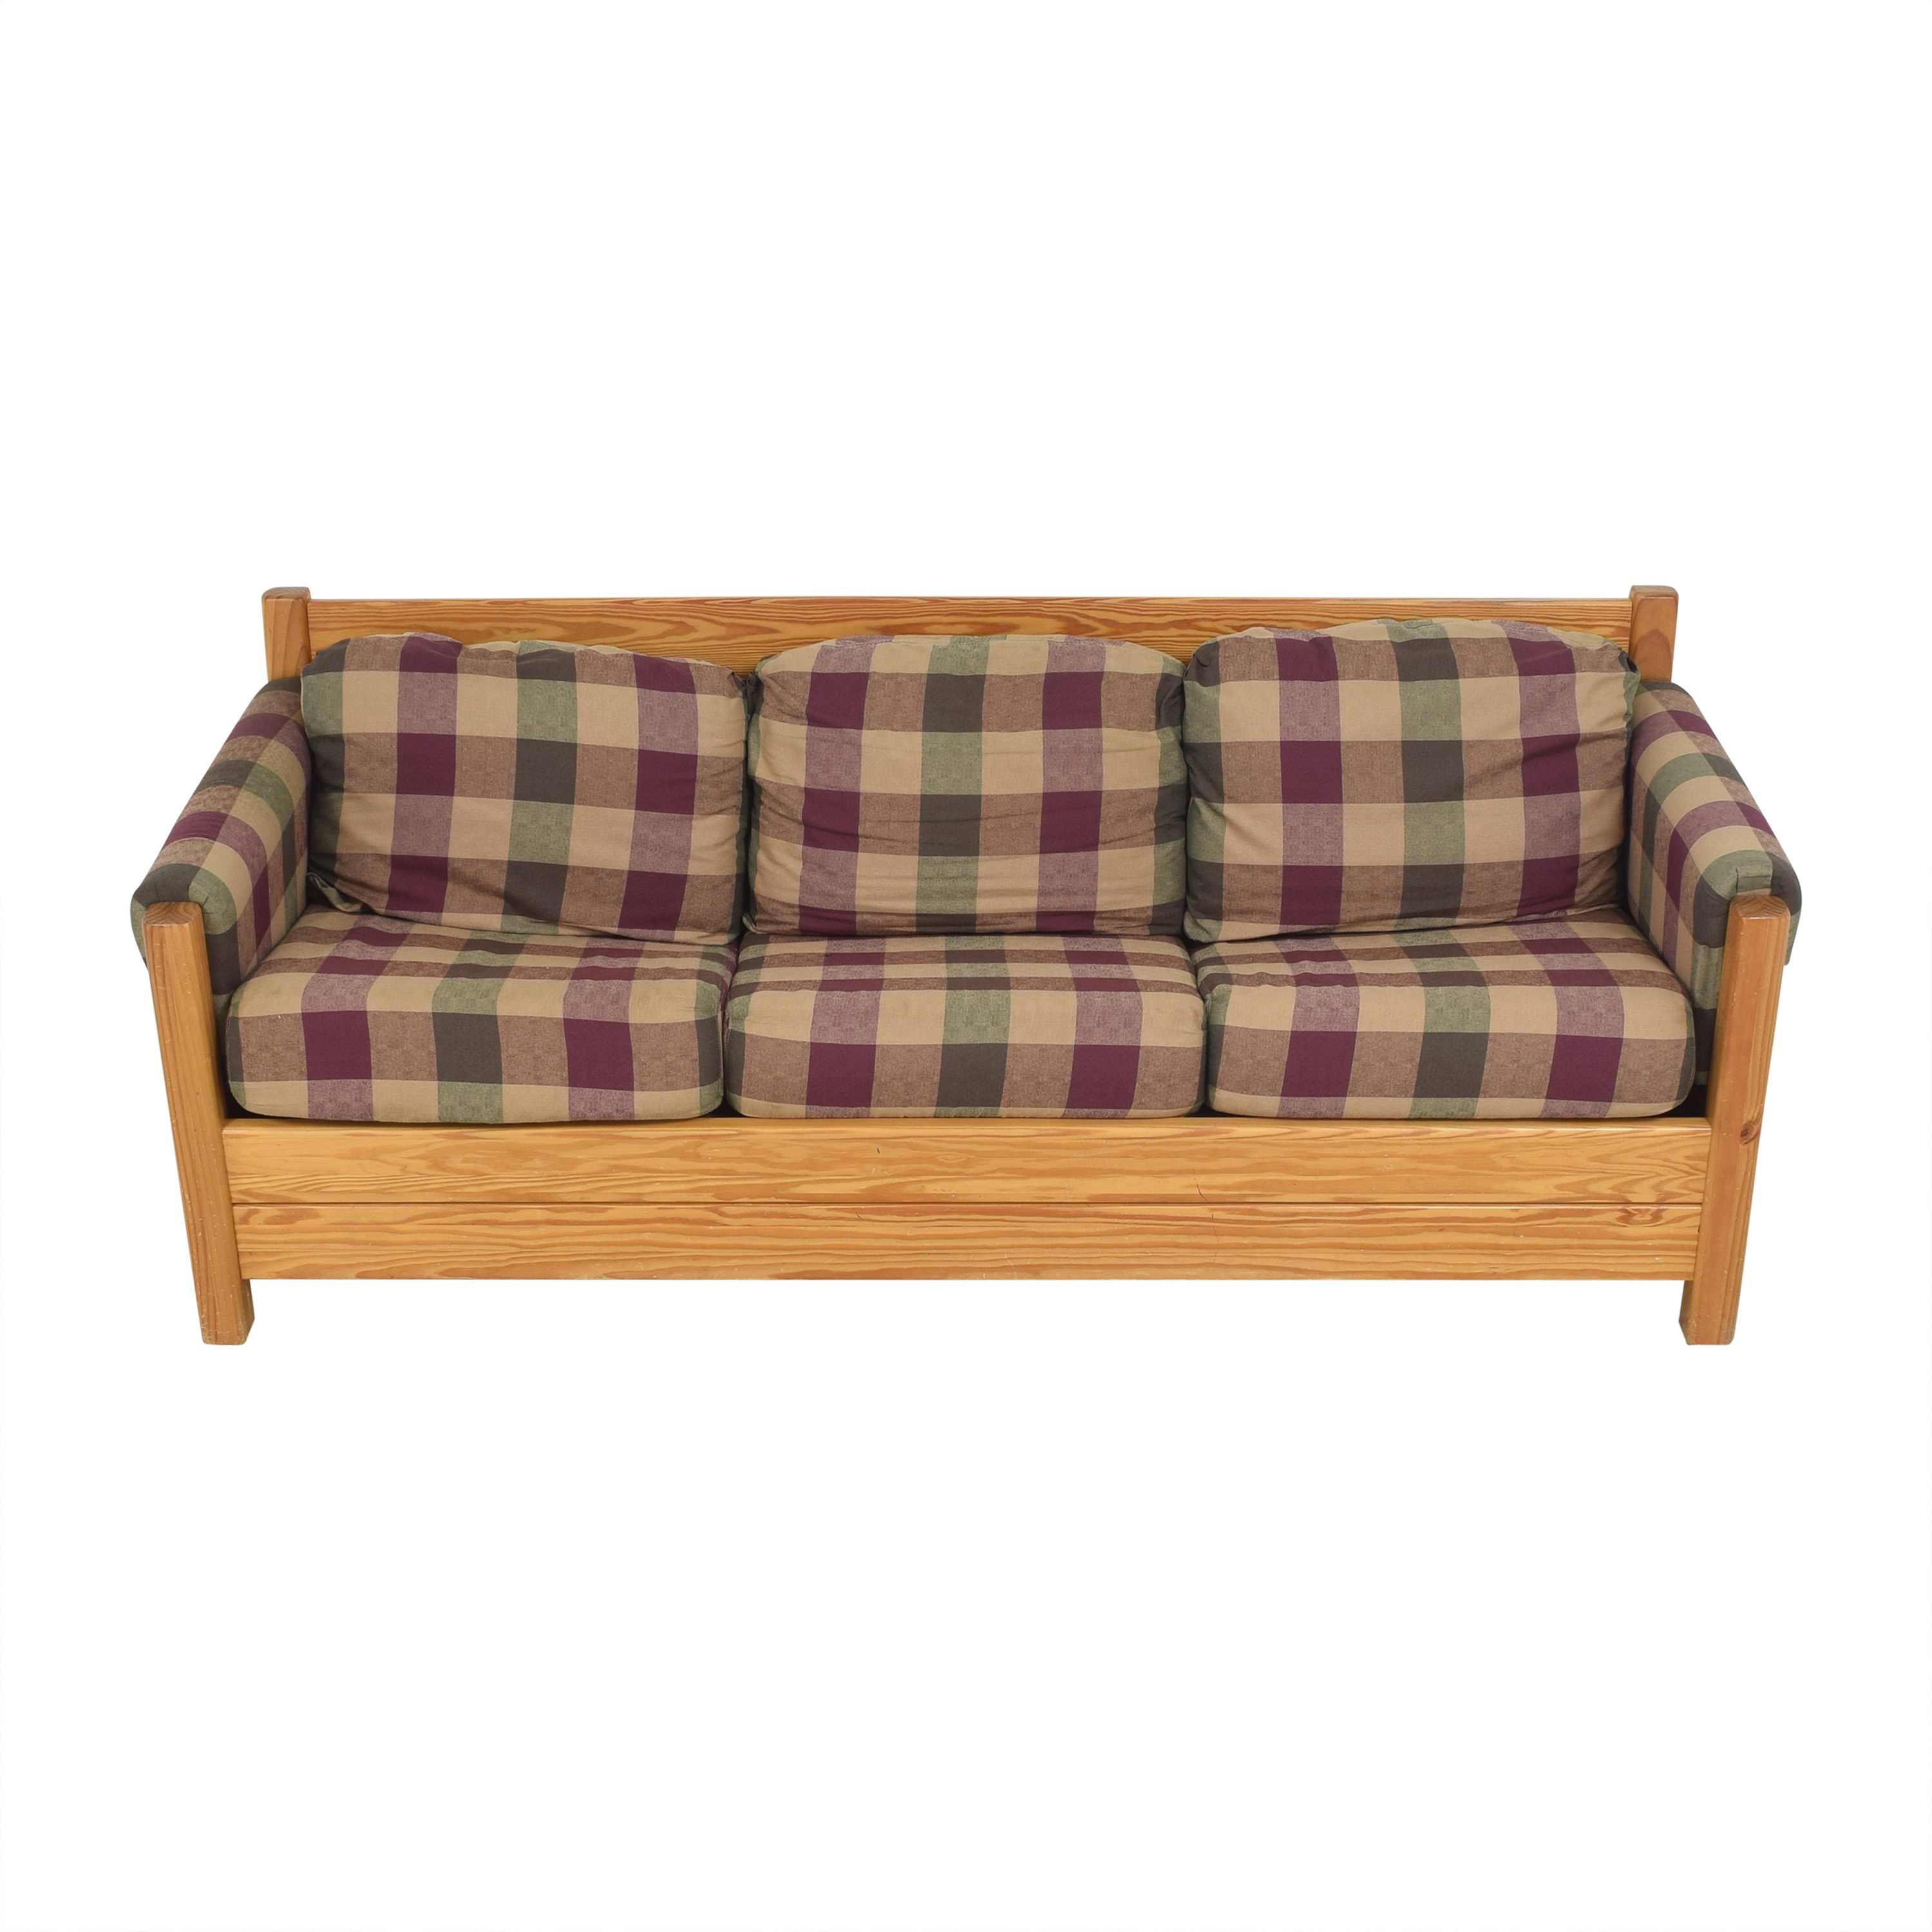 This End Up This End Up Sleeper Sofa ma